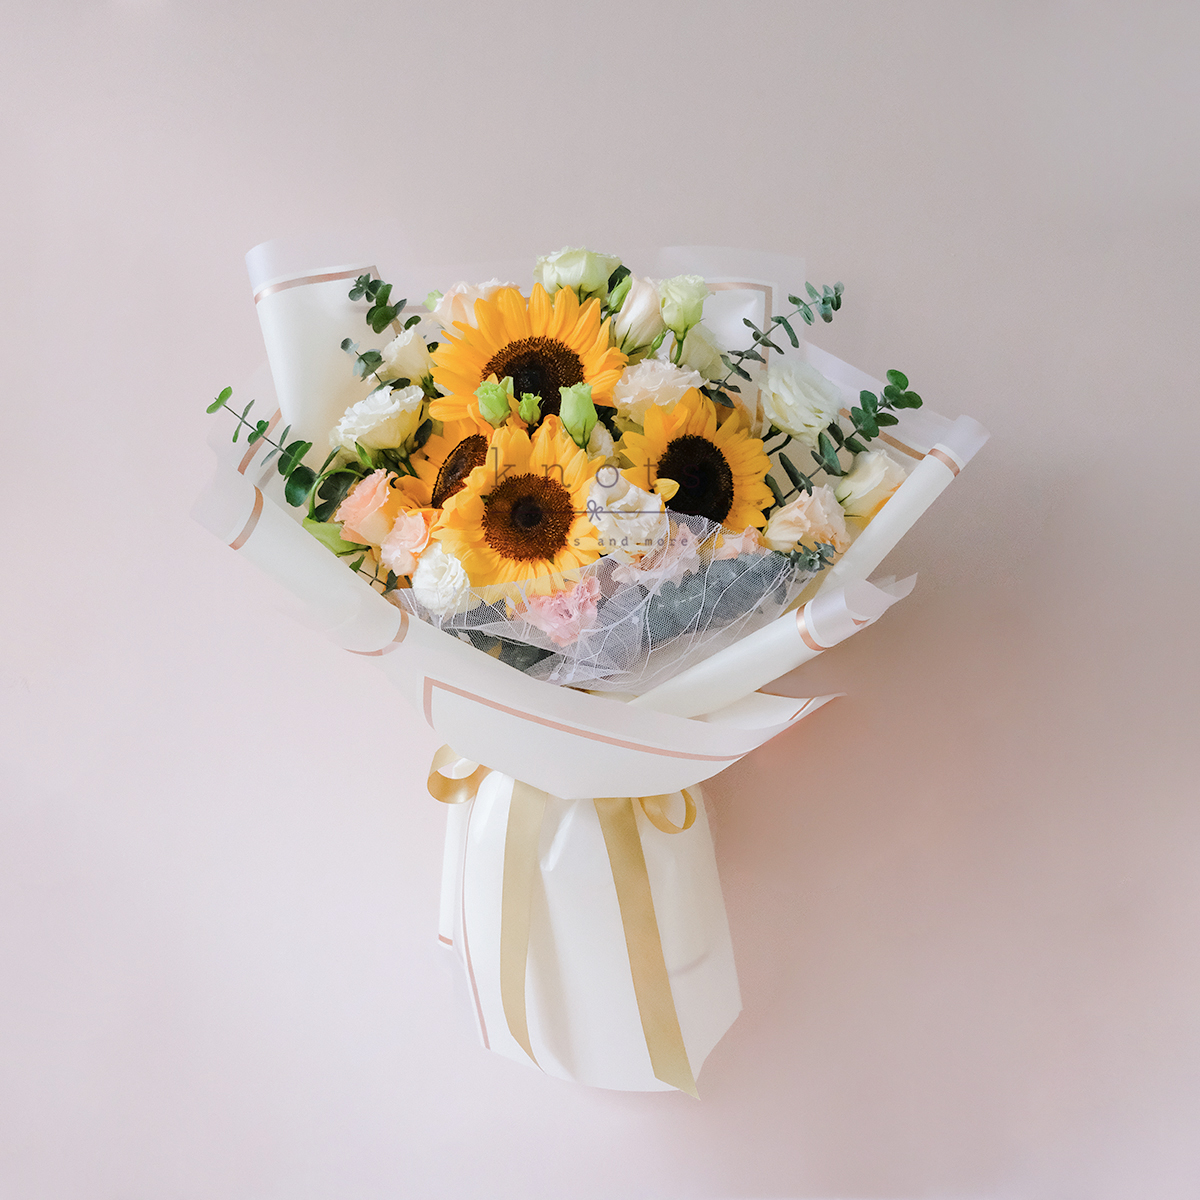 Shines Only With You (Sunflowers Bouquet)